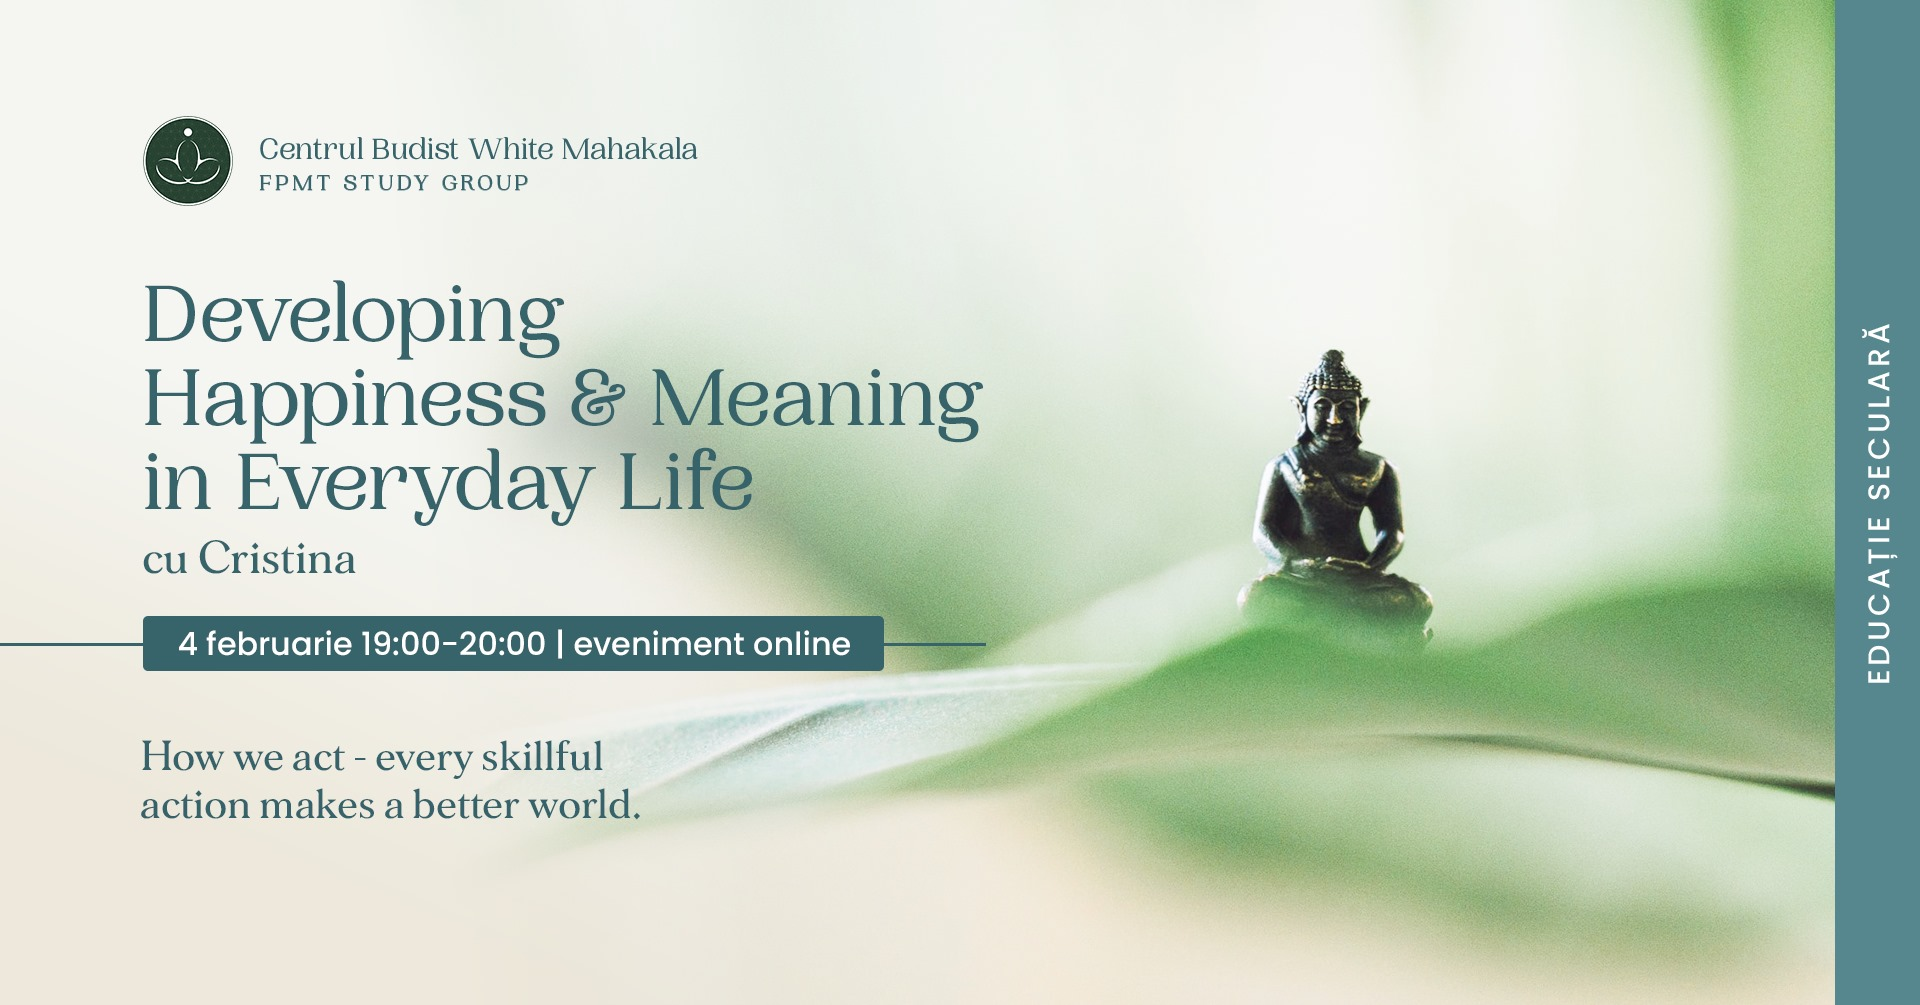 Developing Happiness&Meaning in Everyday Life cu Cristina